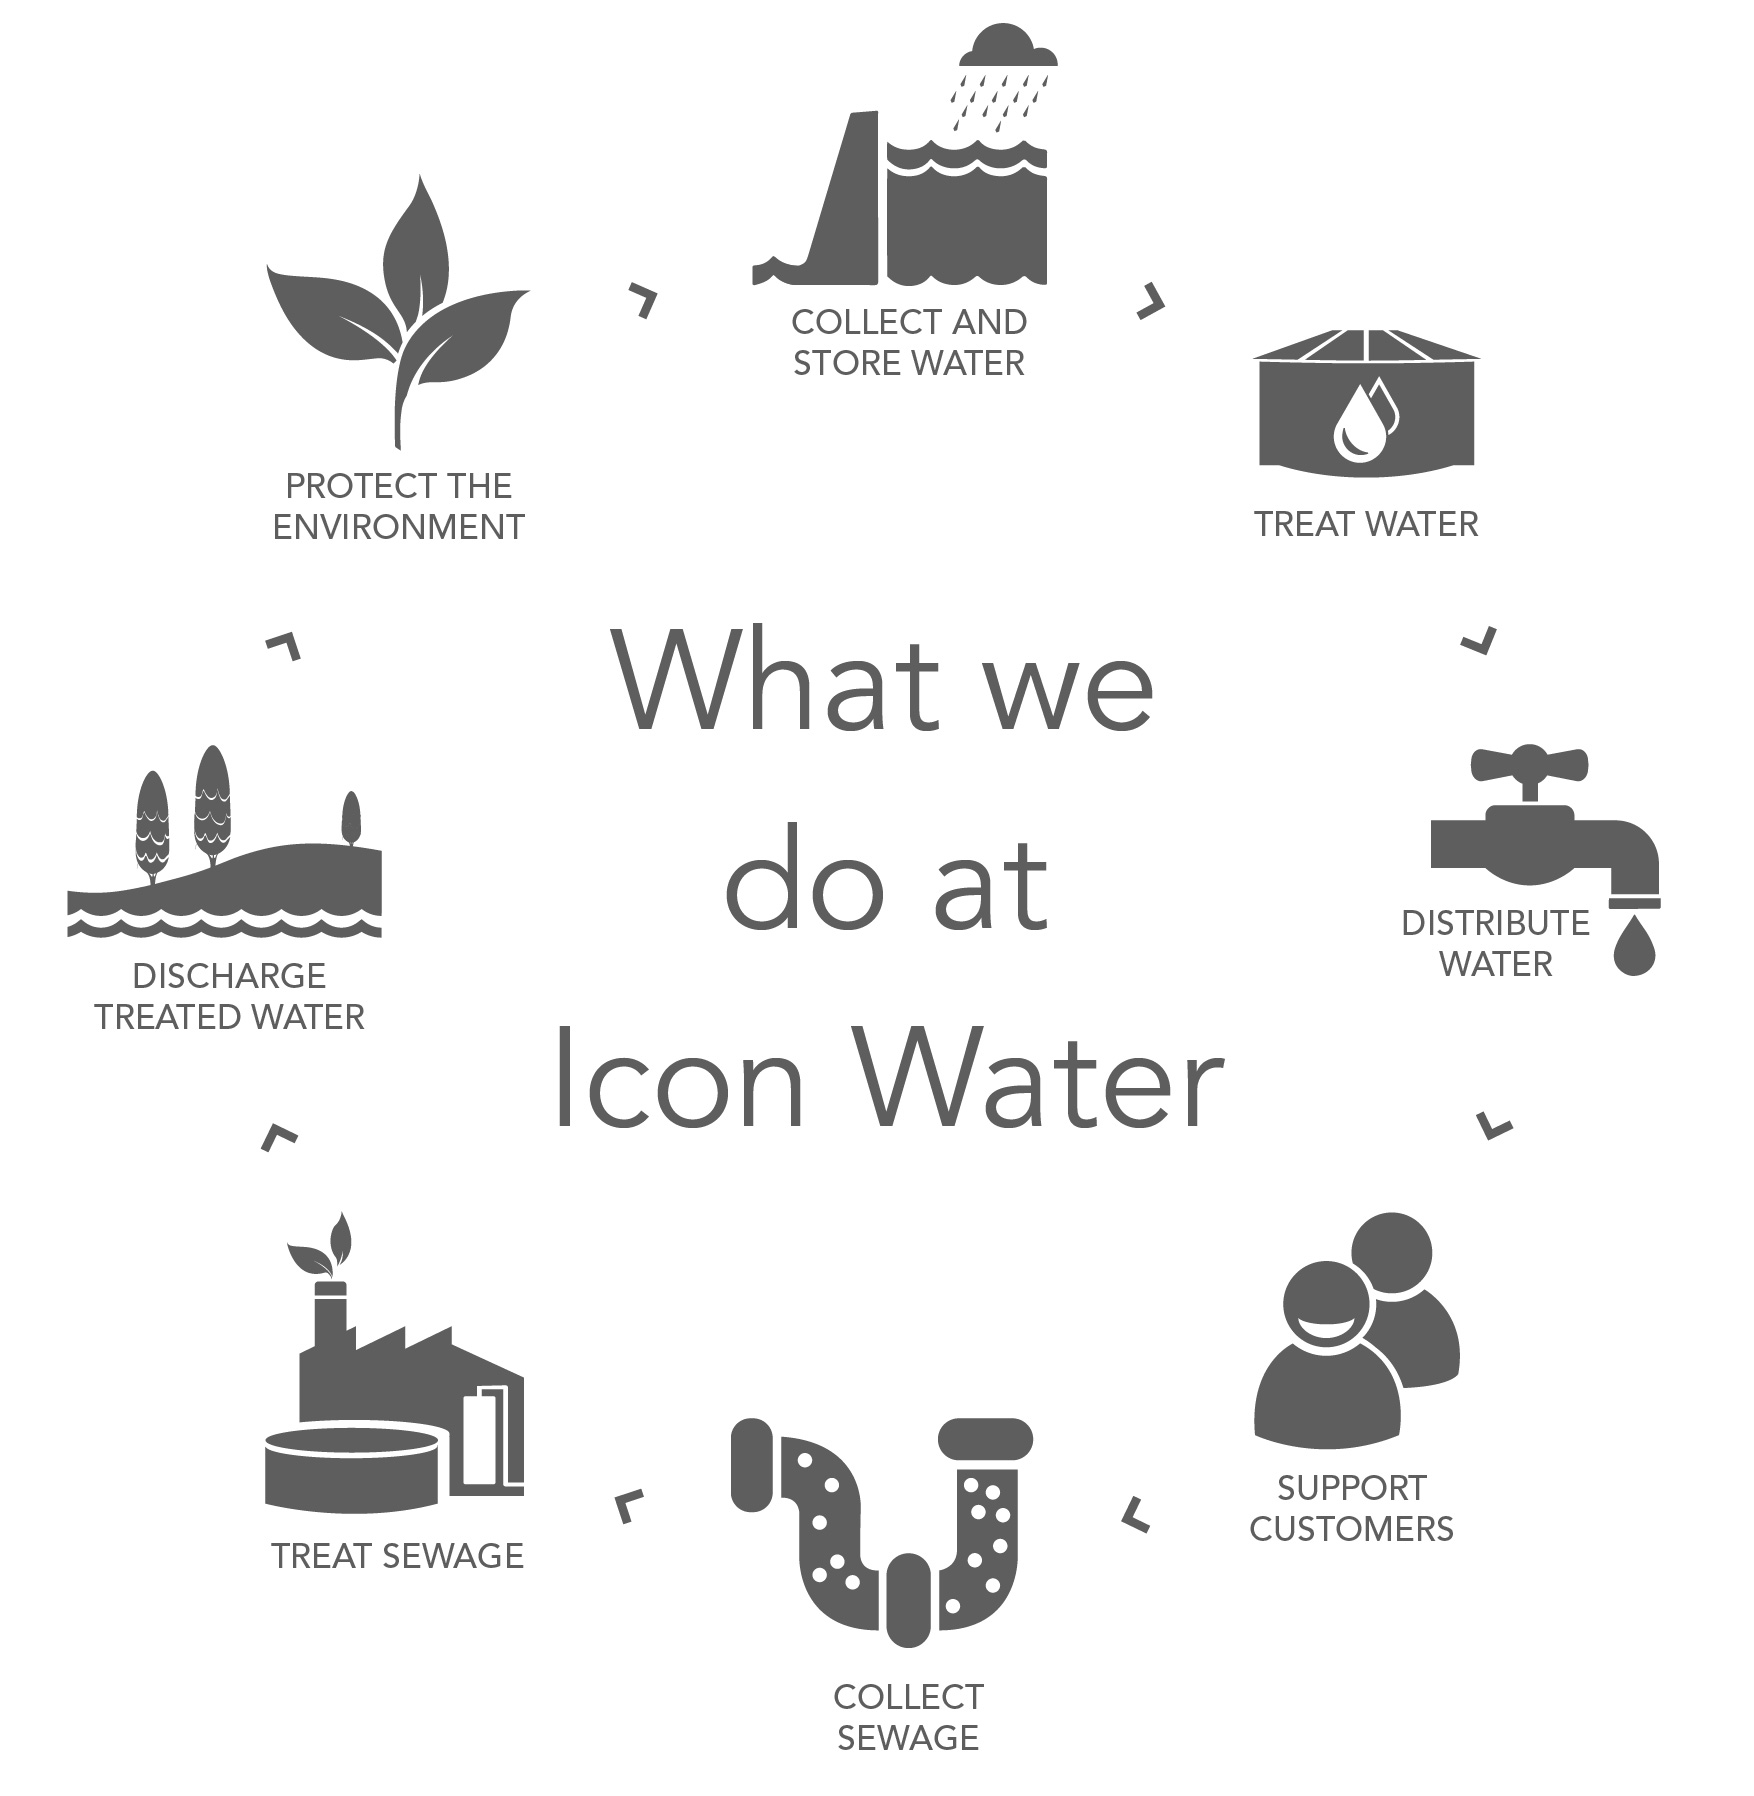 The cycle of what Icon Water does